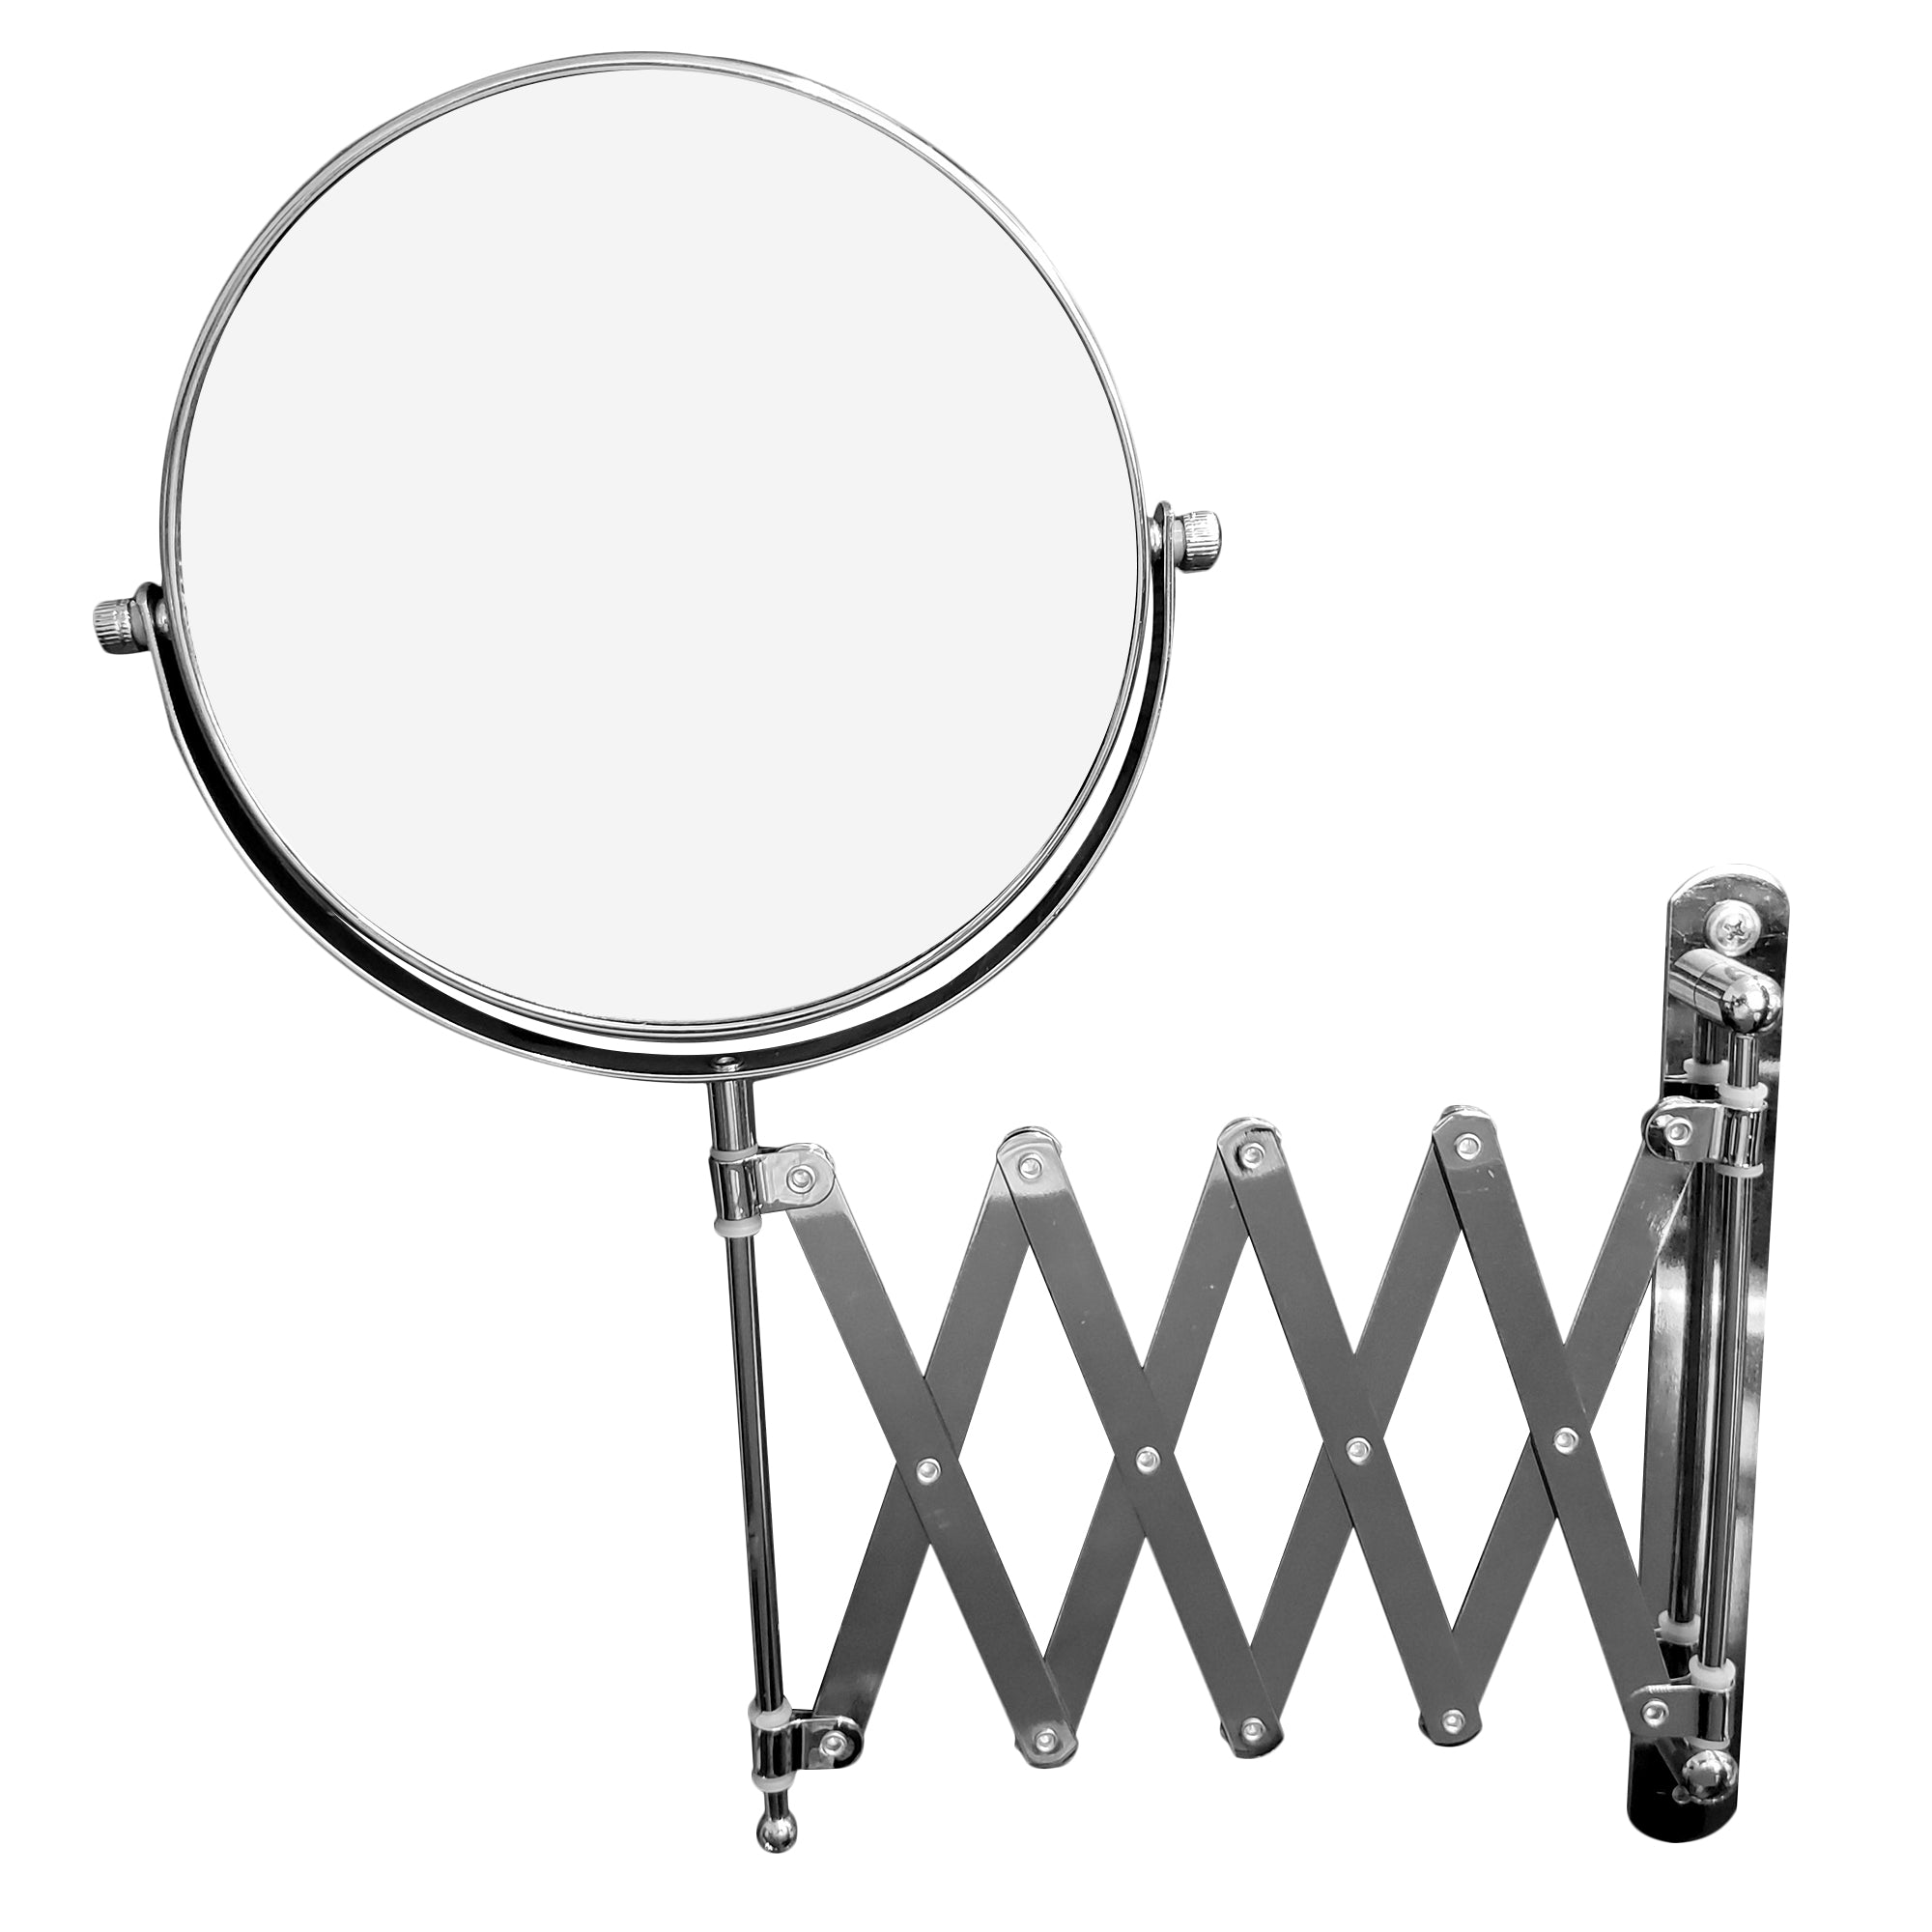 Rucci Magnification Wall Mount Extendable Mirror